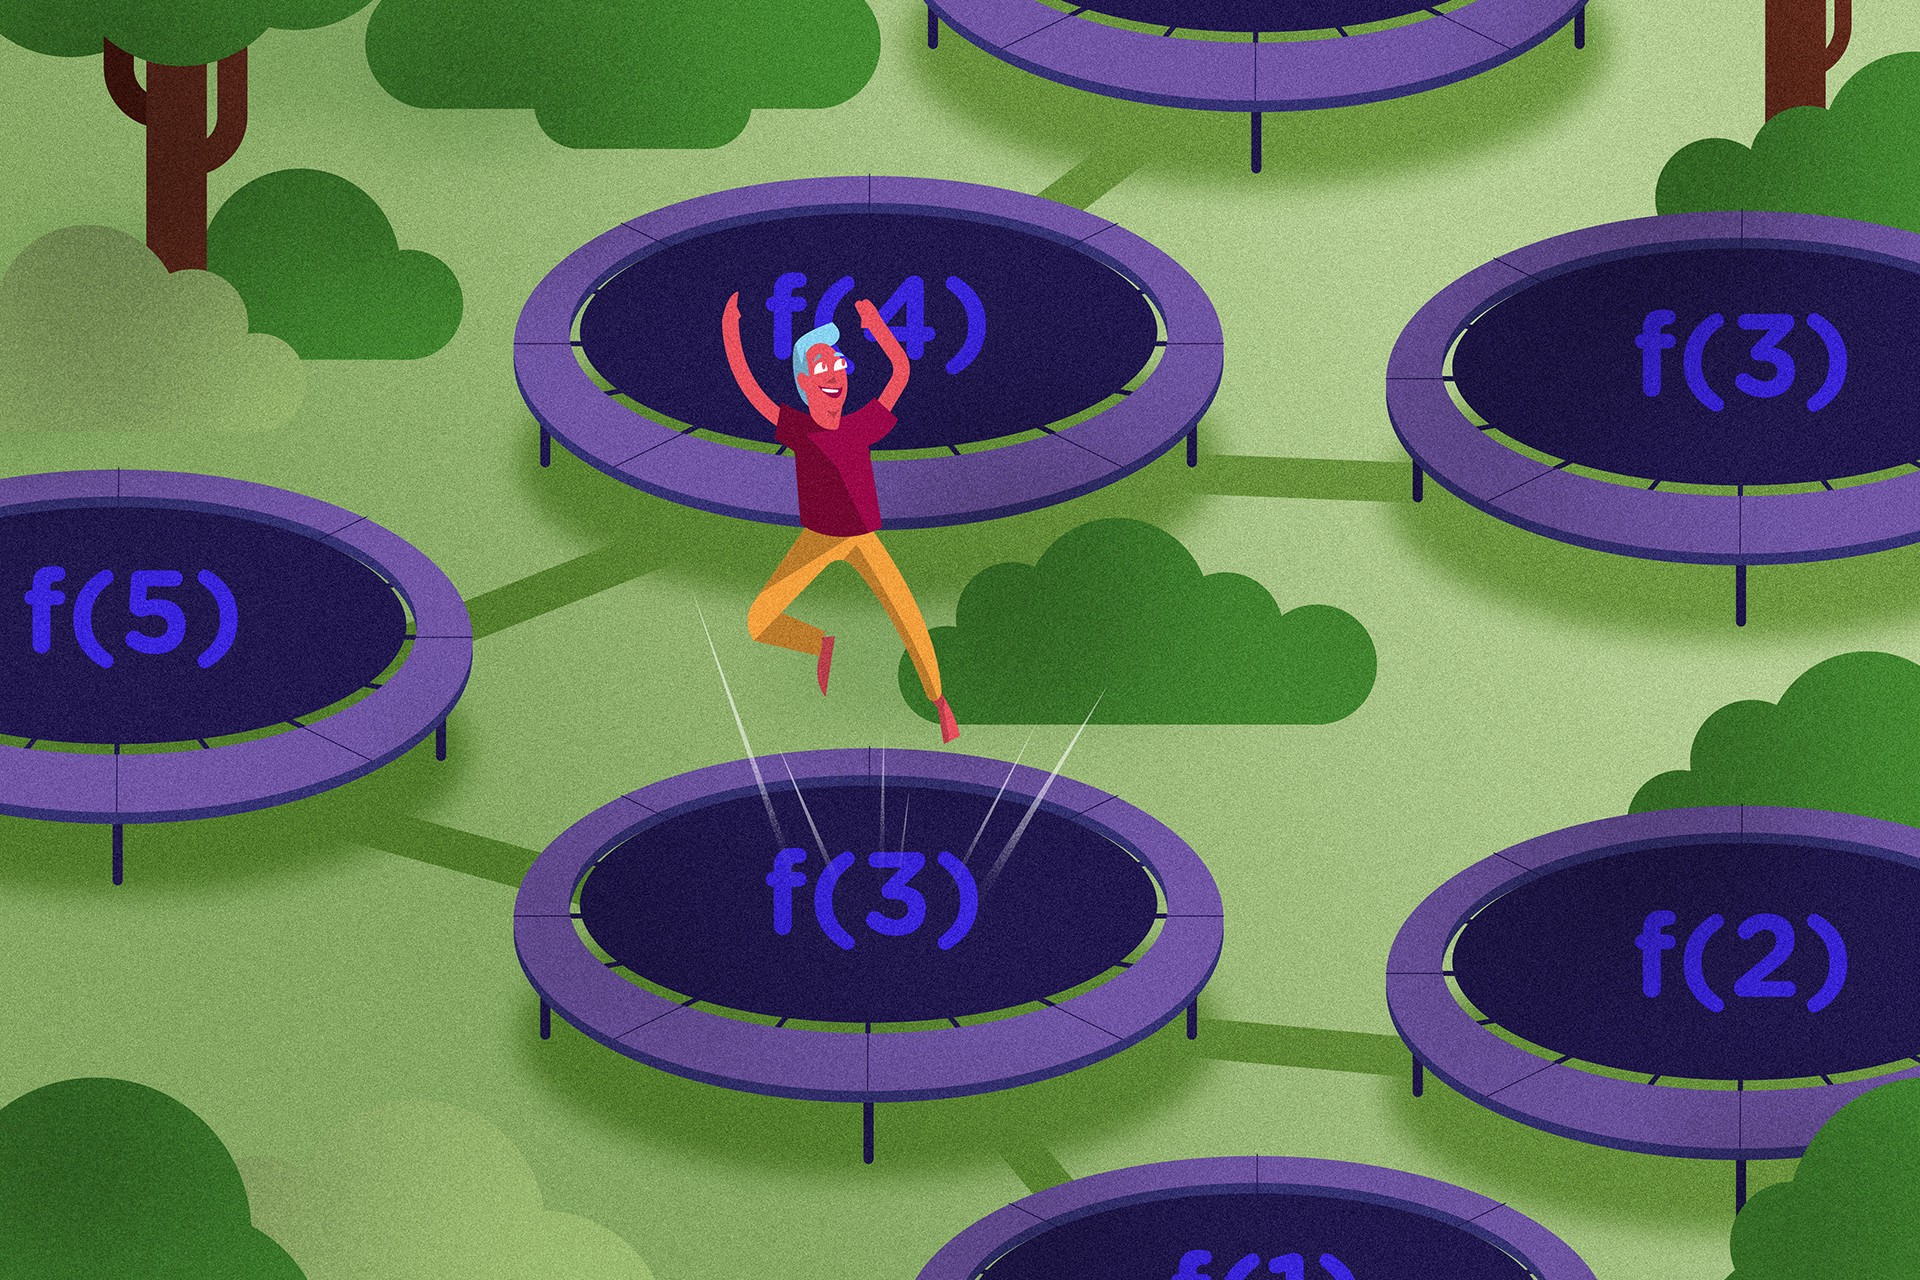 Using trampolines to manage large recursive loops in JavaScript